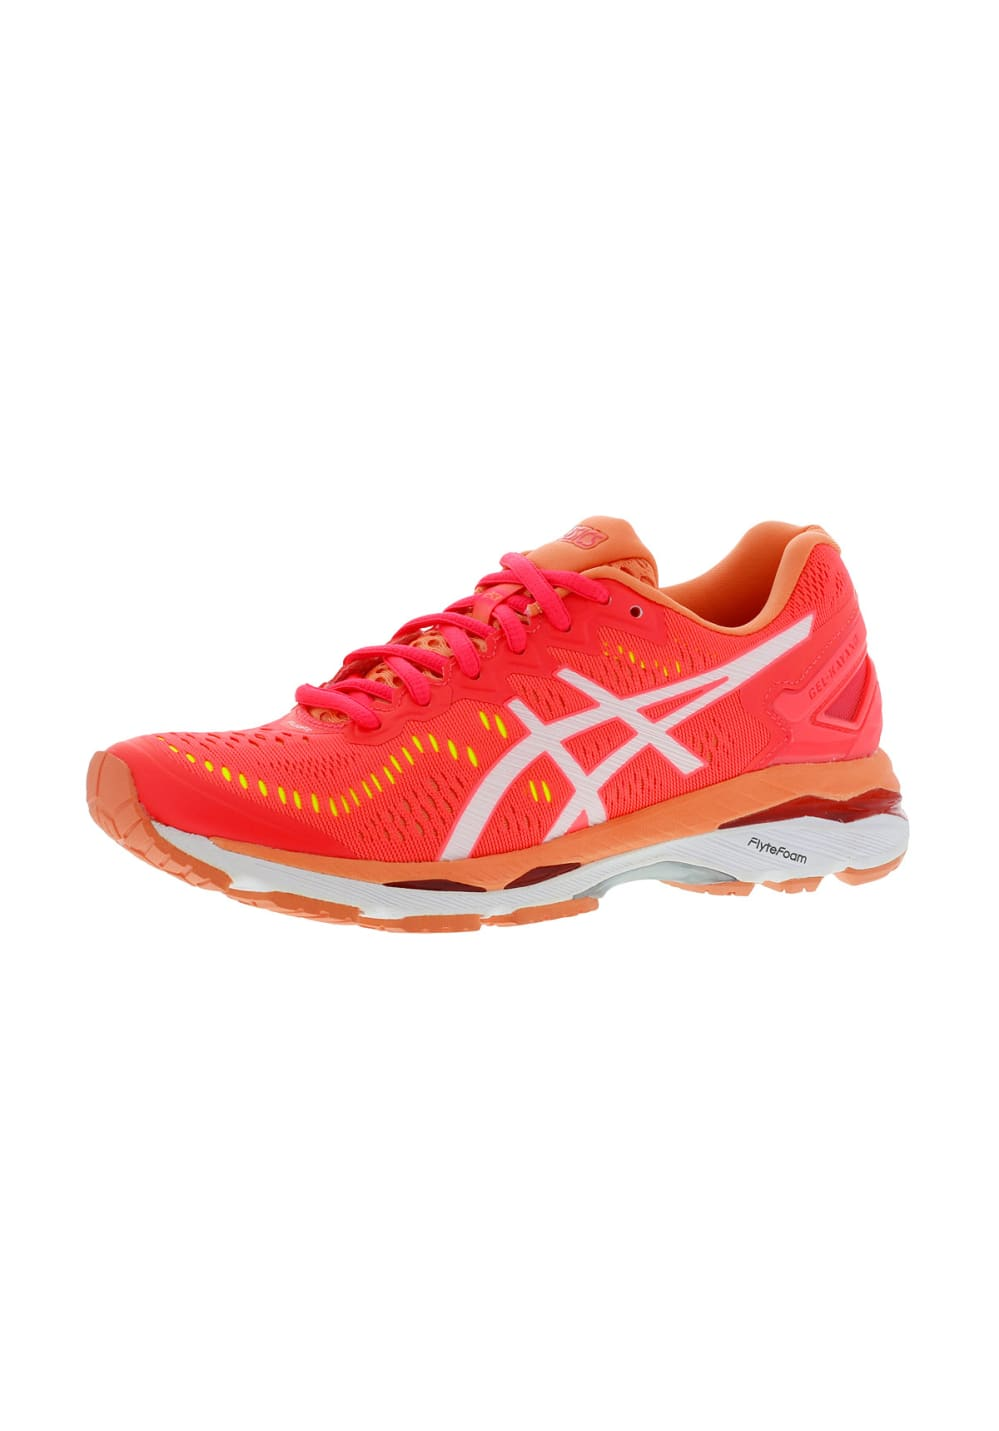 hot sale online 975c8 1a8aa ASICS GEL-Kayano 23 - Running shoes for Women - Red